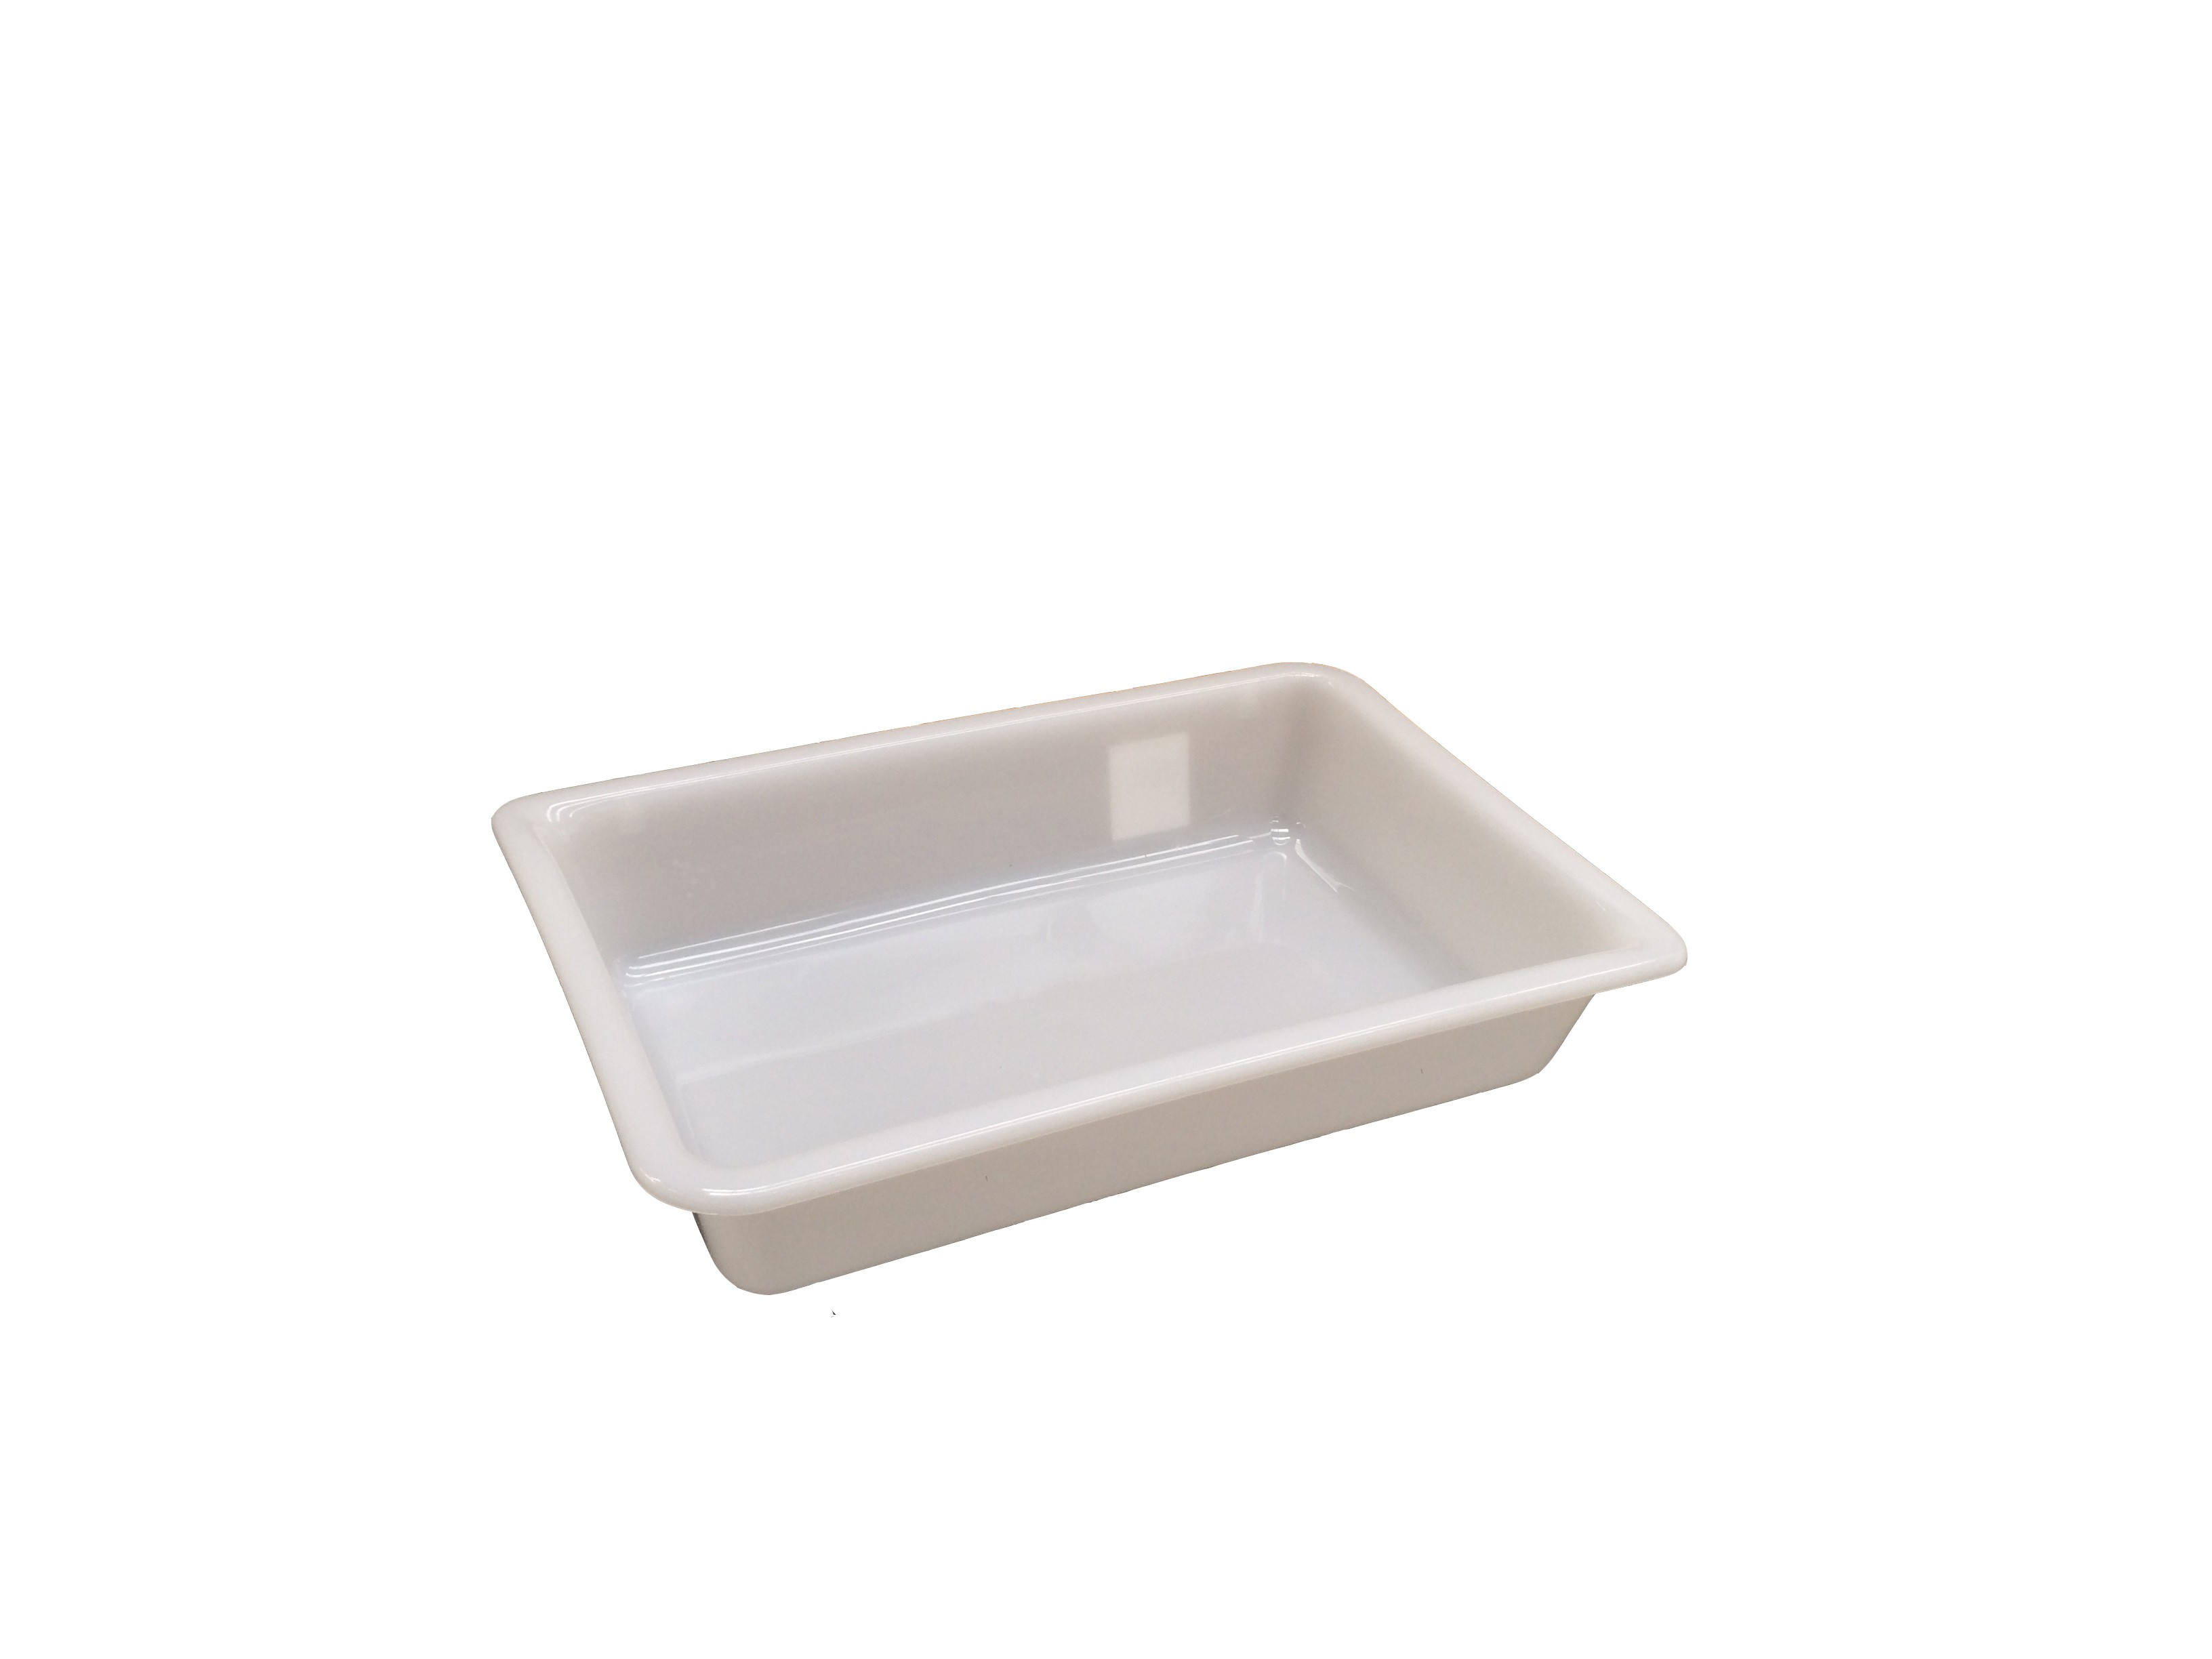 3 Litre Food Grade Plastic Nesting Tray/ Commercial Catering Chef's Display Tray